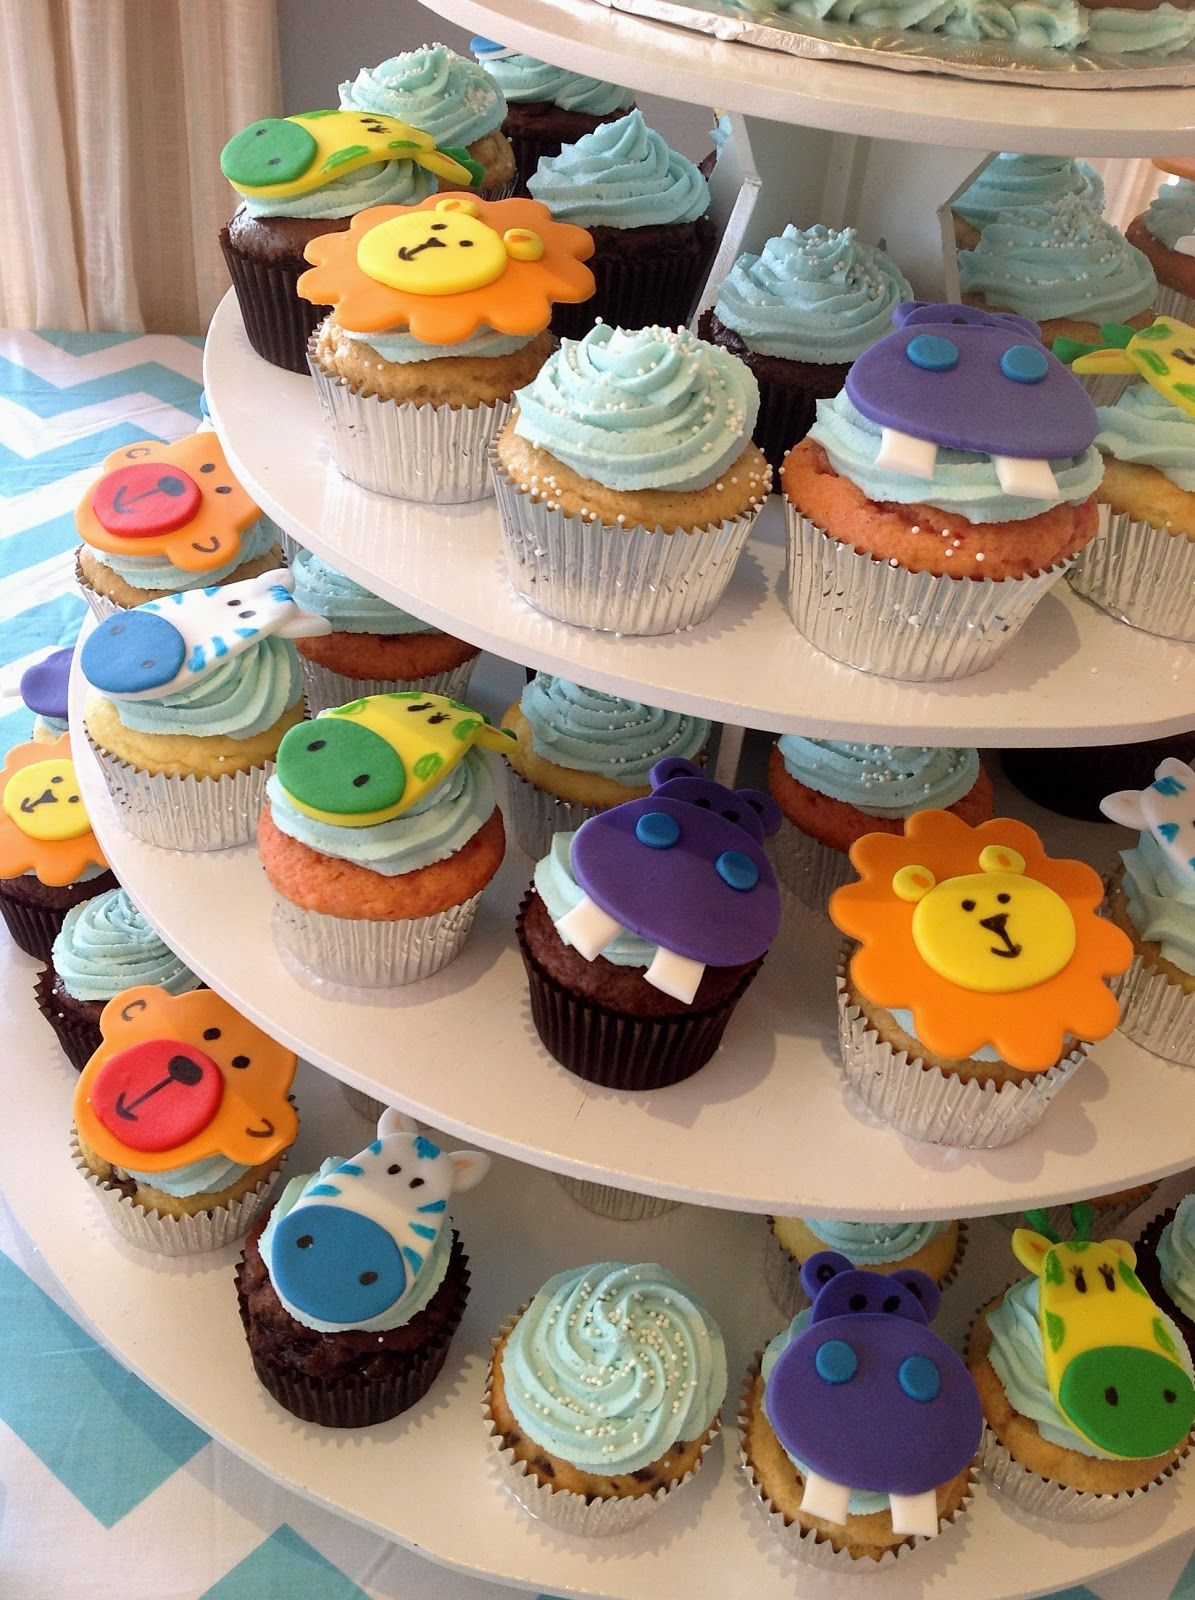 This rainbow-studded baby boy shower featured a small sculpted cake and matching cupcake tower. The cake was covered in textu...